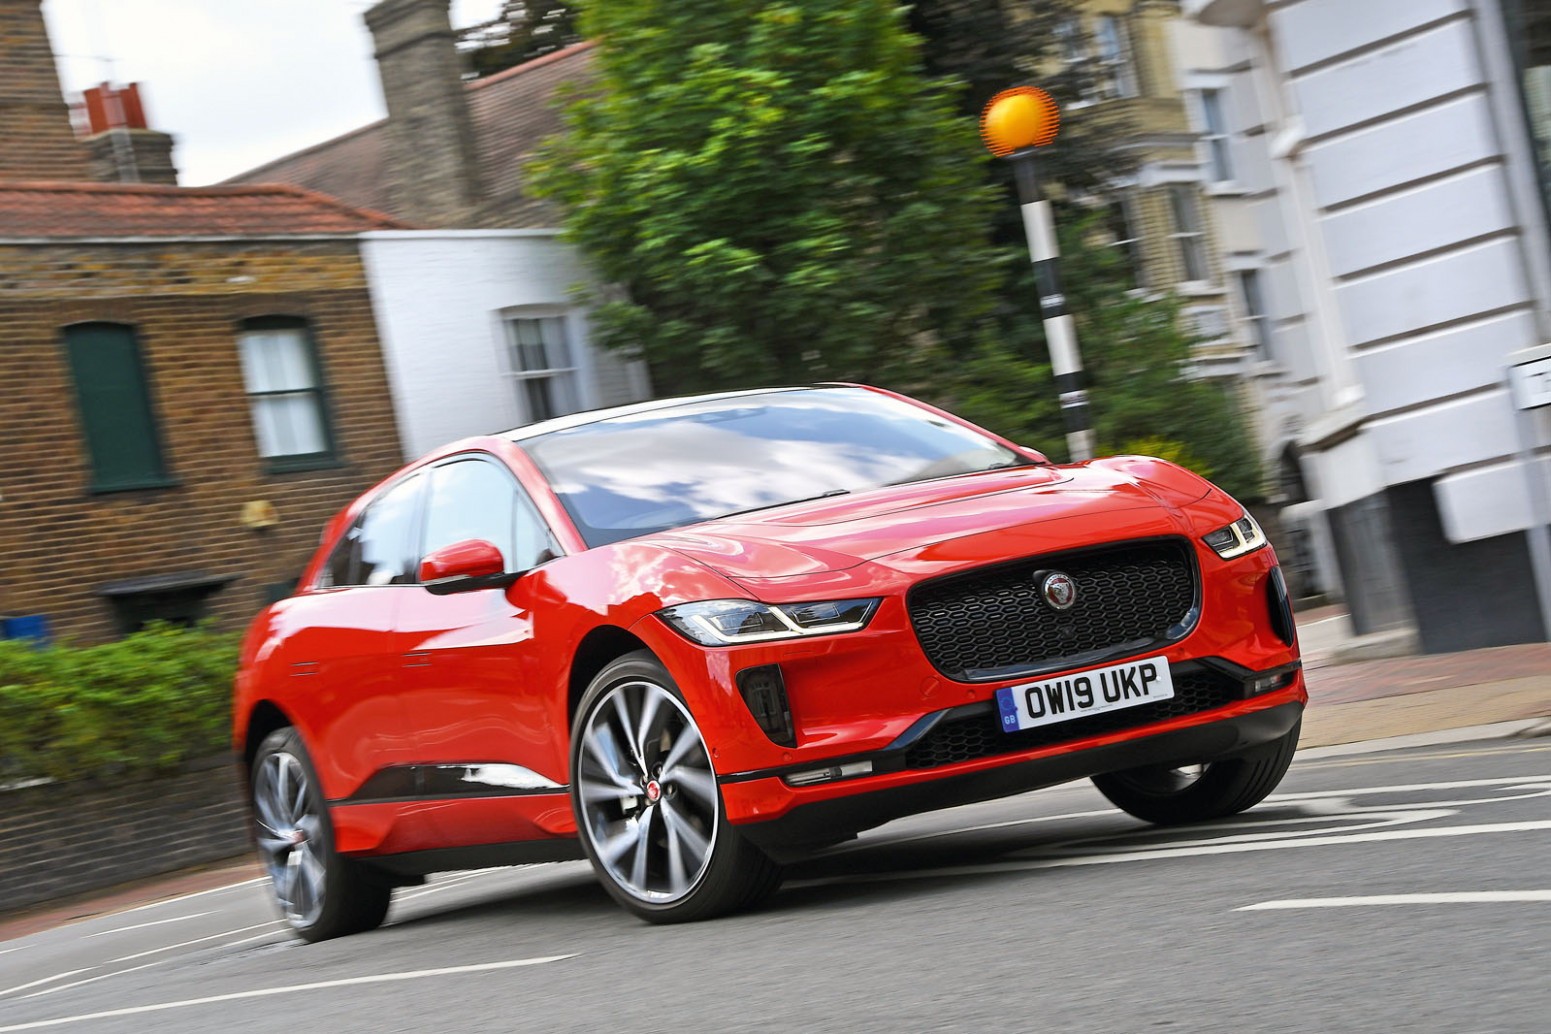 Jaguar I-Pace 8 long-term review | Autocar - jaguar world january 2020